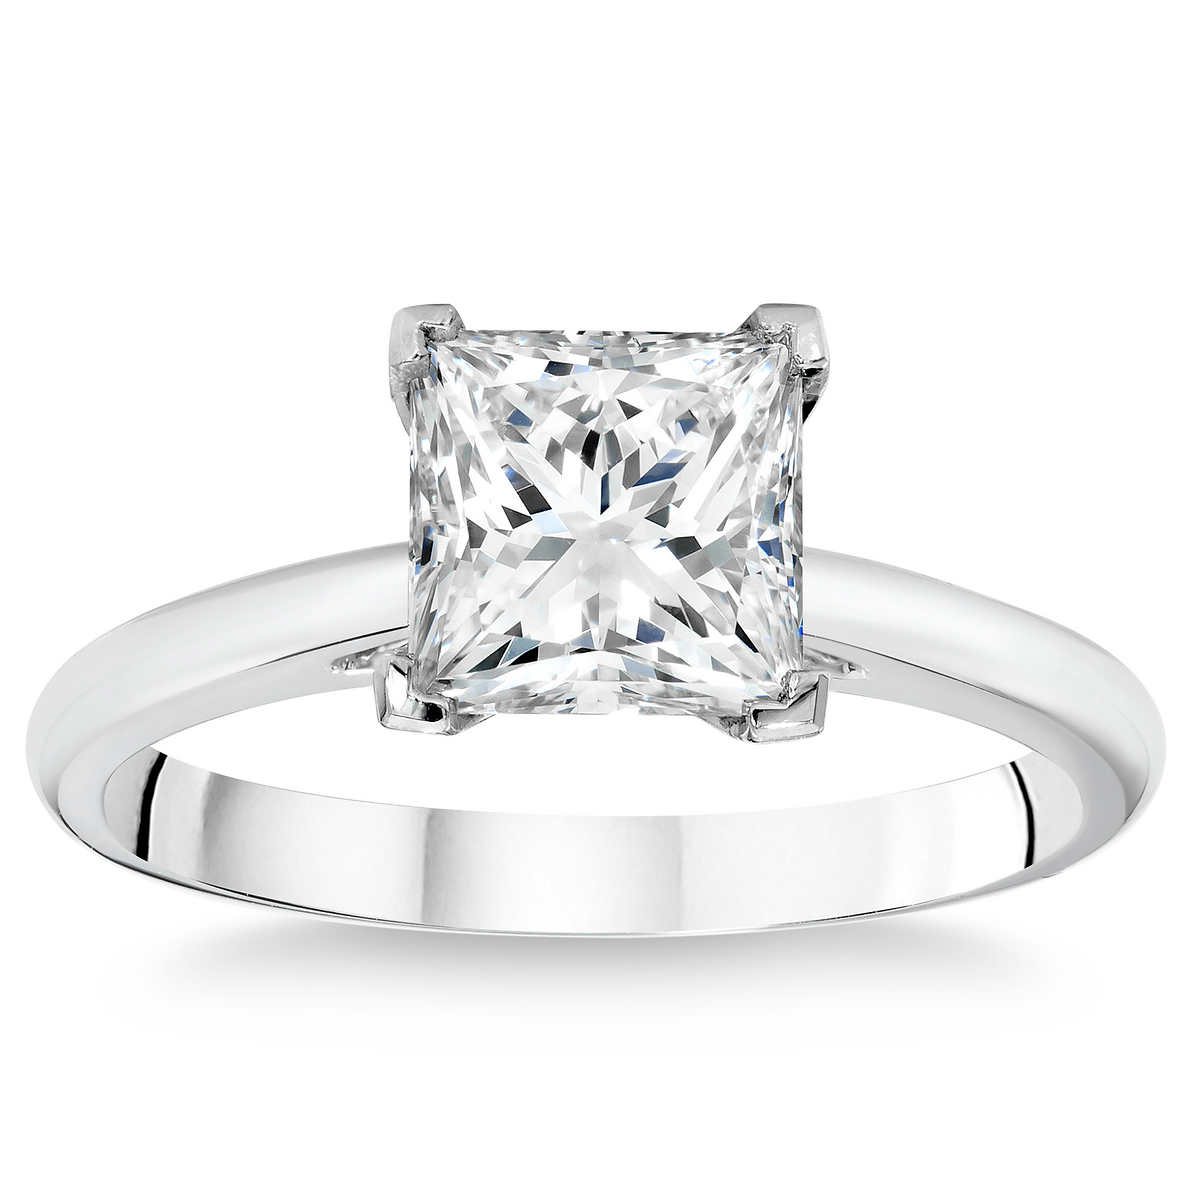 rings wedding rings dollars Princess Cut 2 54 ct VS1 Clarity H Color Diamond Platinum Solitaire Ring